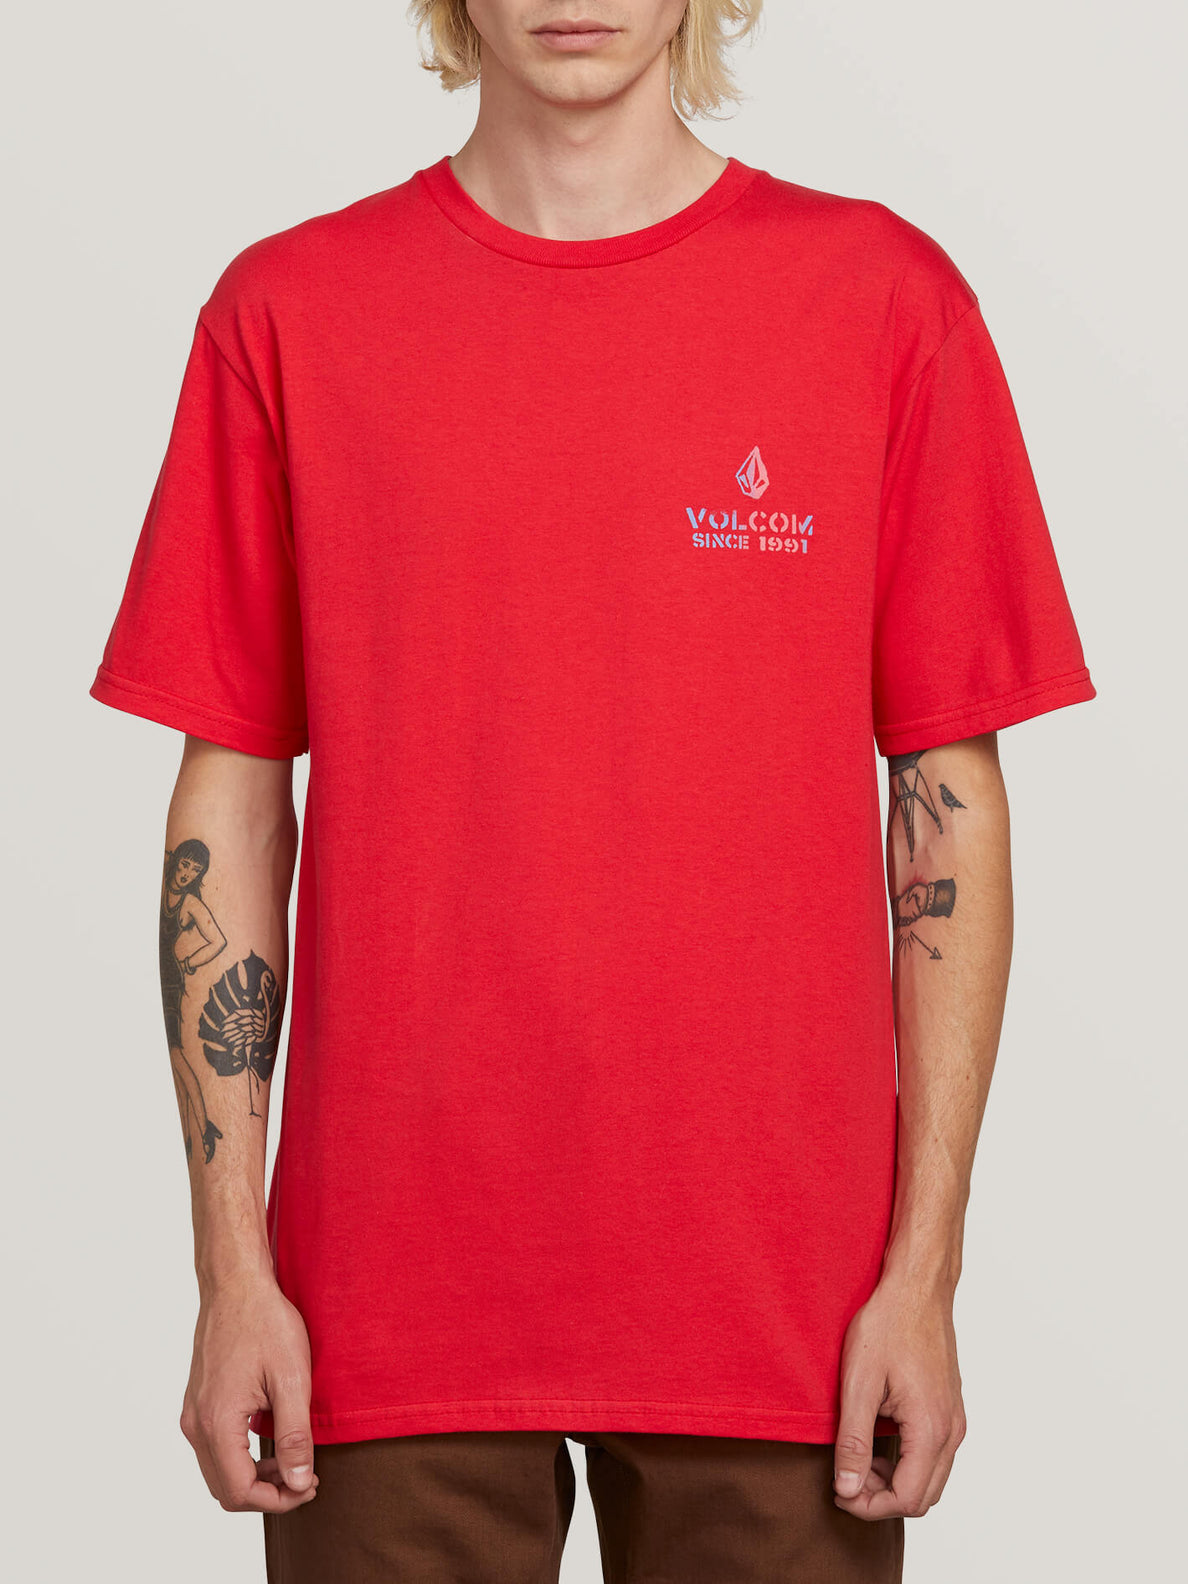 Peace Is Progress Short Sleeve Tee In True Red, Front View